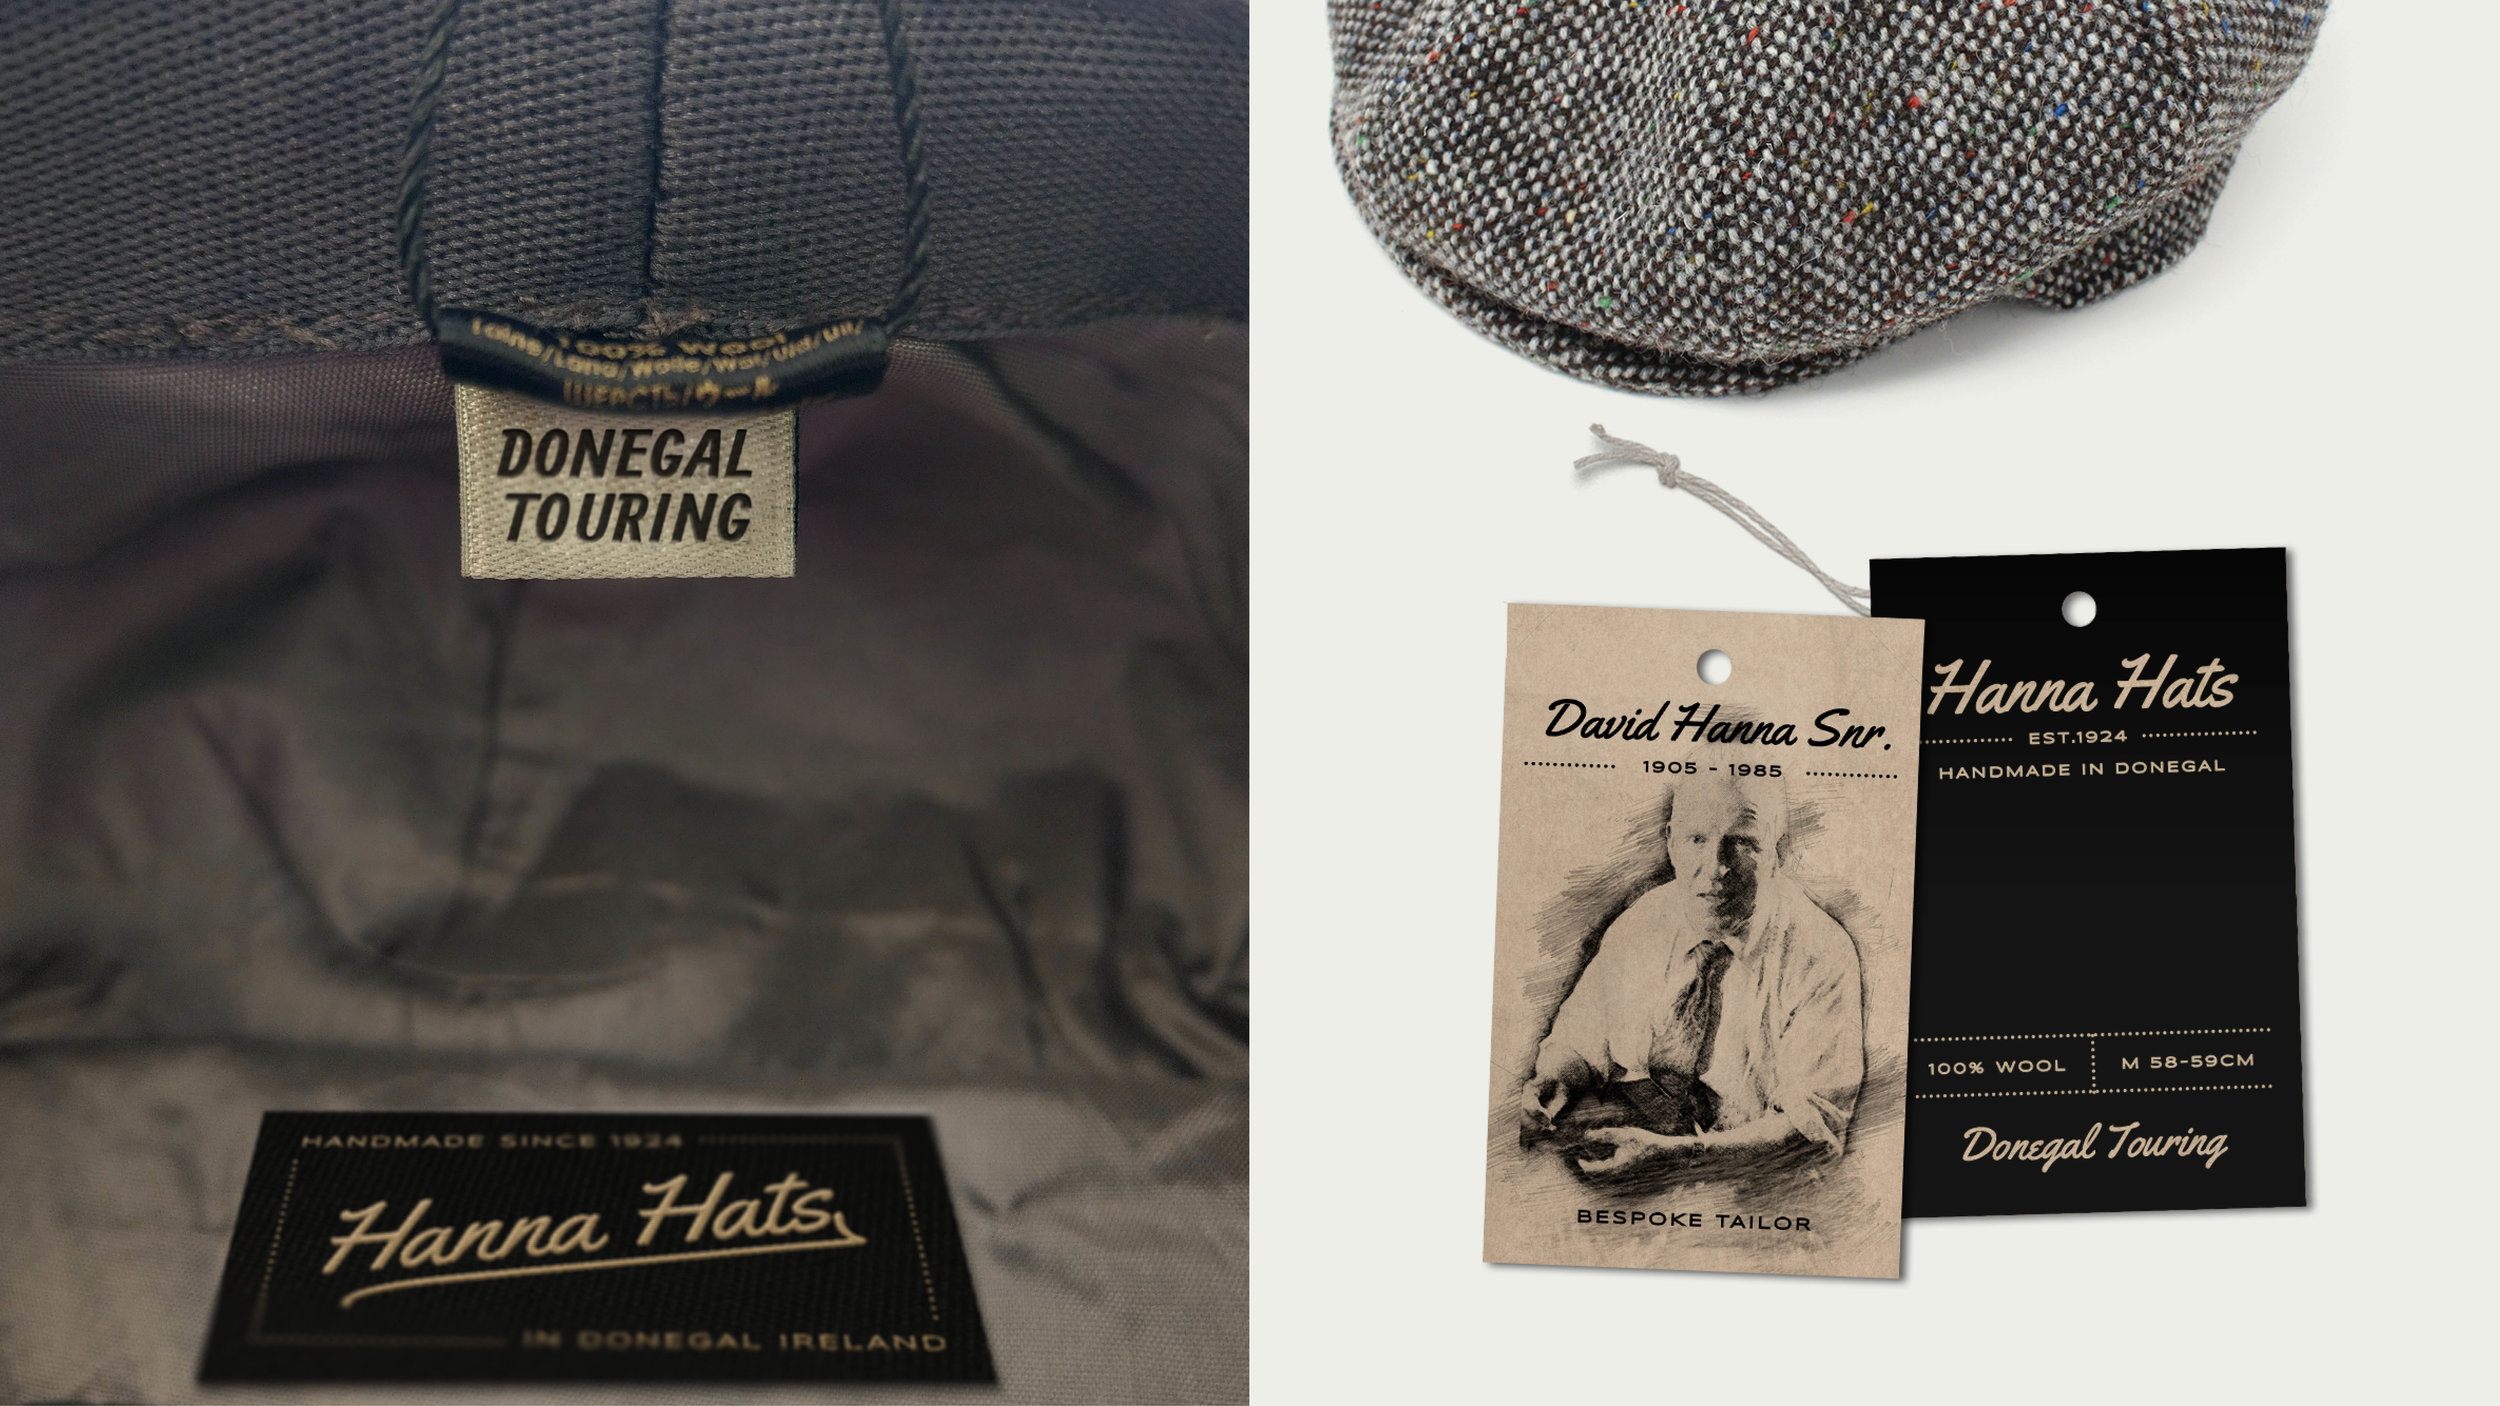 We think a label as shown above for the Donegal Touring hat would add a really nice touch to each of the product ranges.